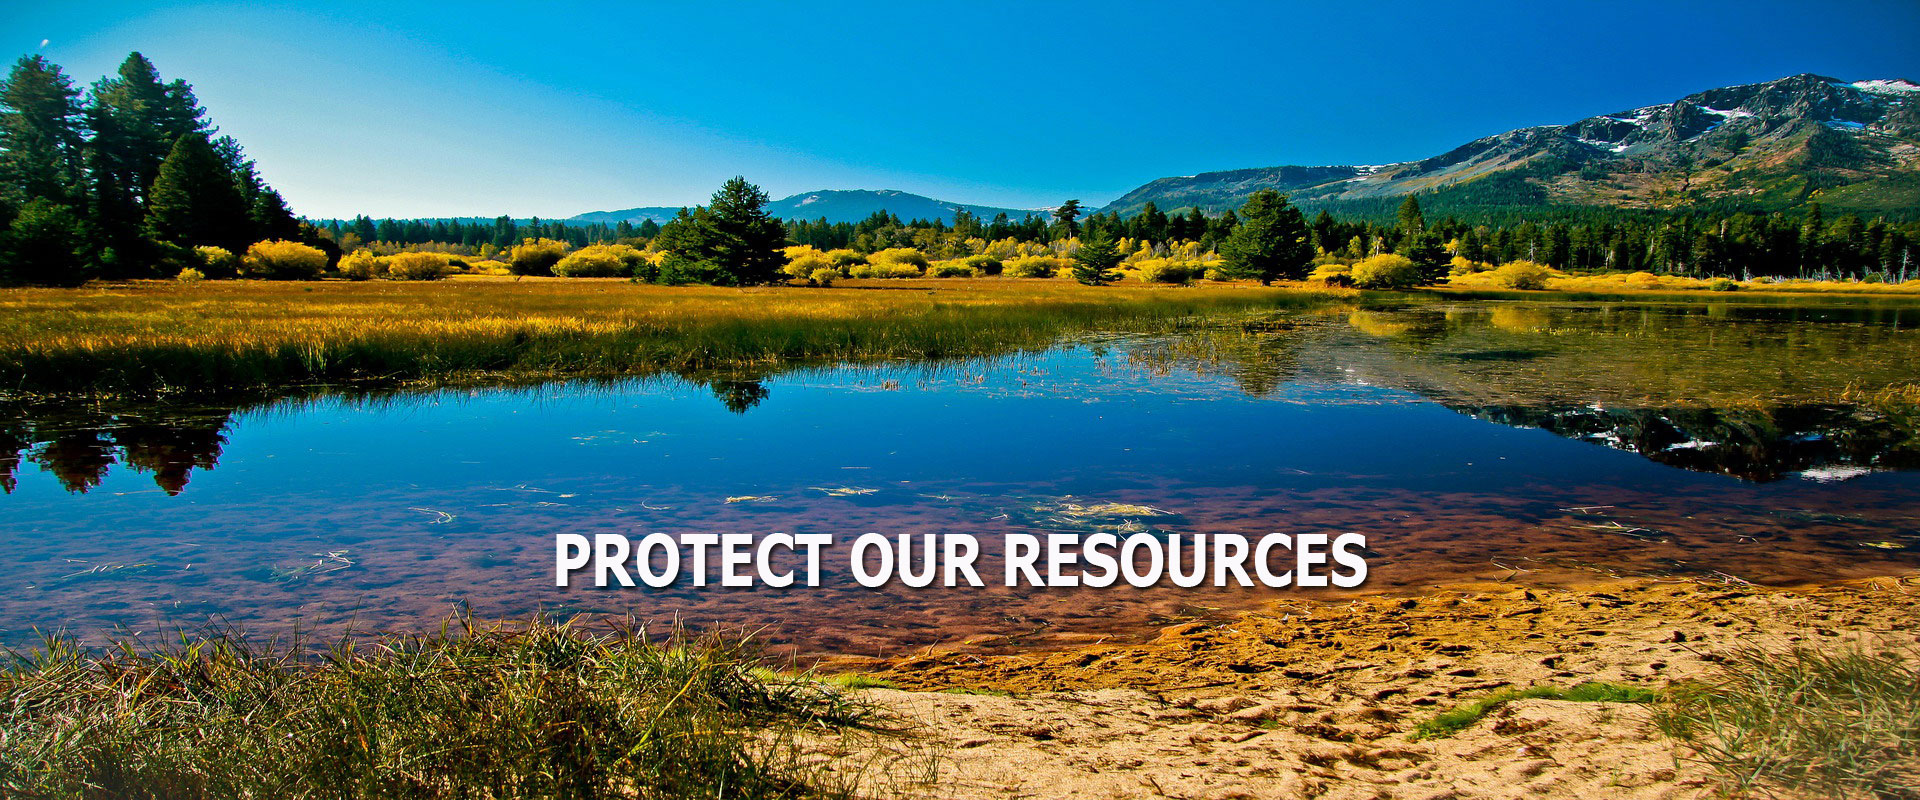 protect resources